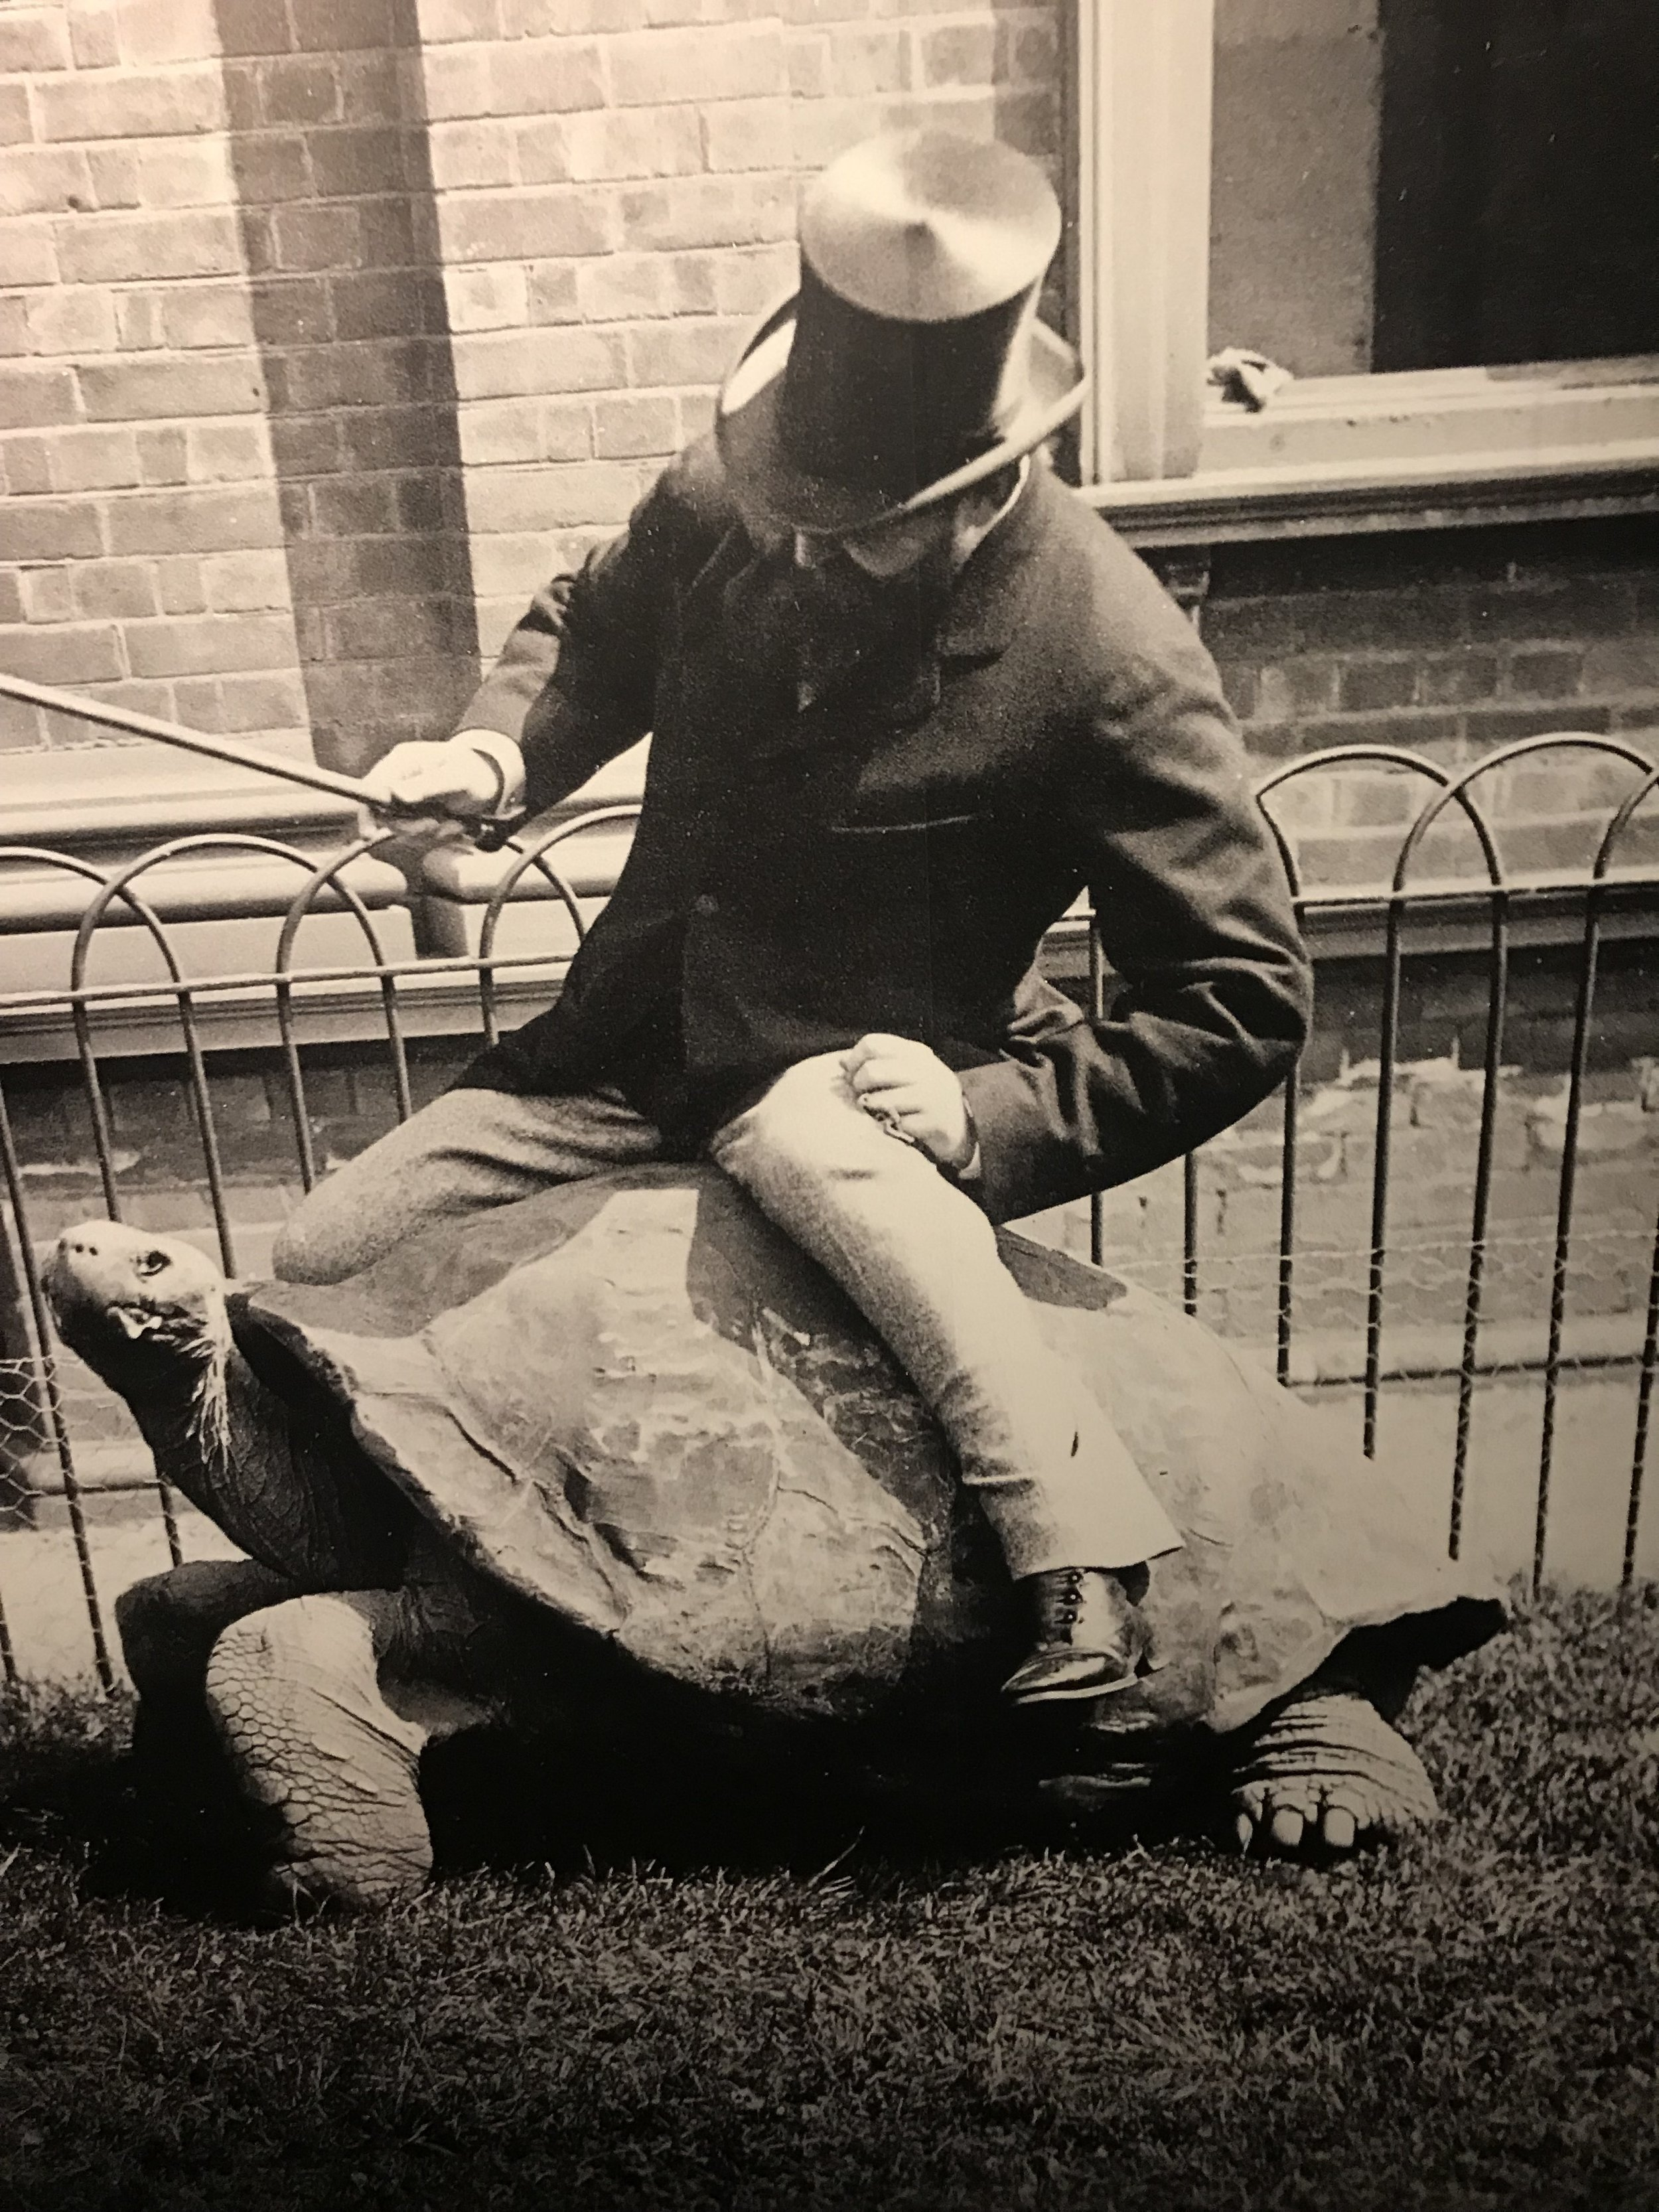 Walter Rothschild riding a turtle. Although I'm sure he made important contributions to zoology, it's hard not to hate him for torturing this turtle.